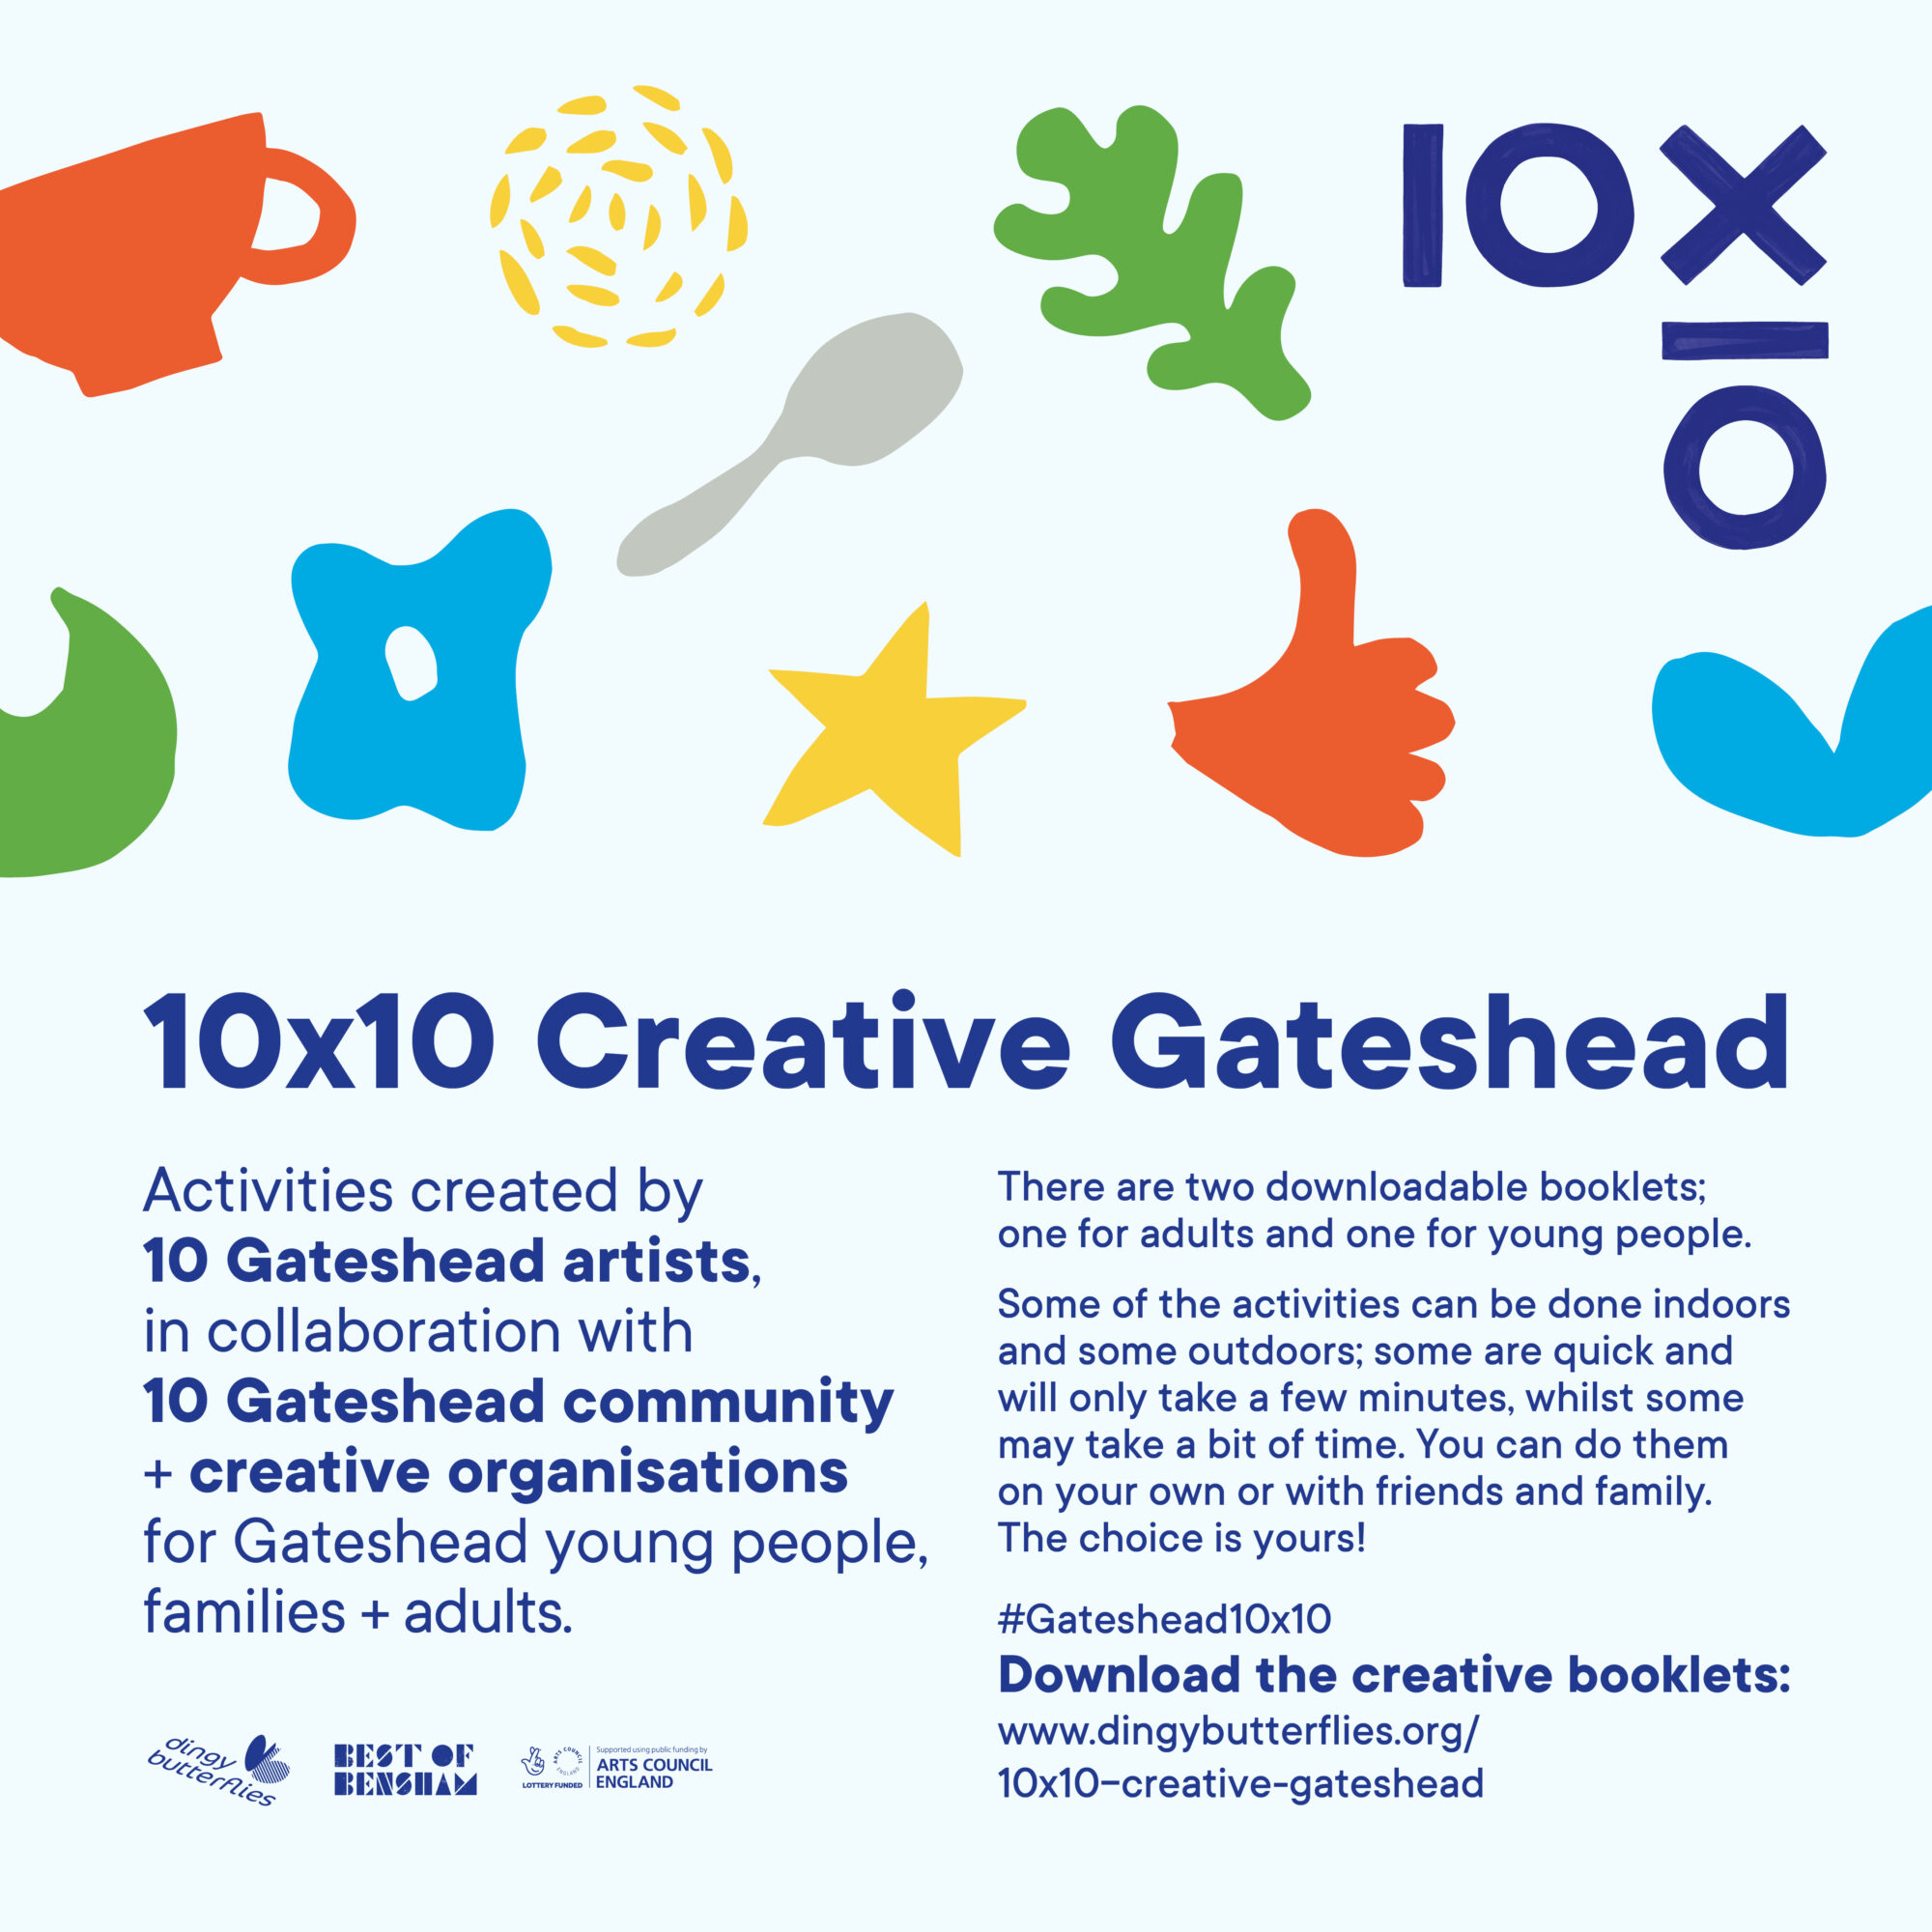 A poster for 10x10 Creative Gateshead. Blue writing on a light blue background with colourful abstract icons.